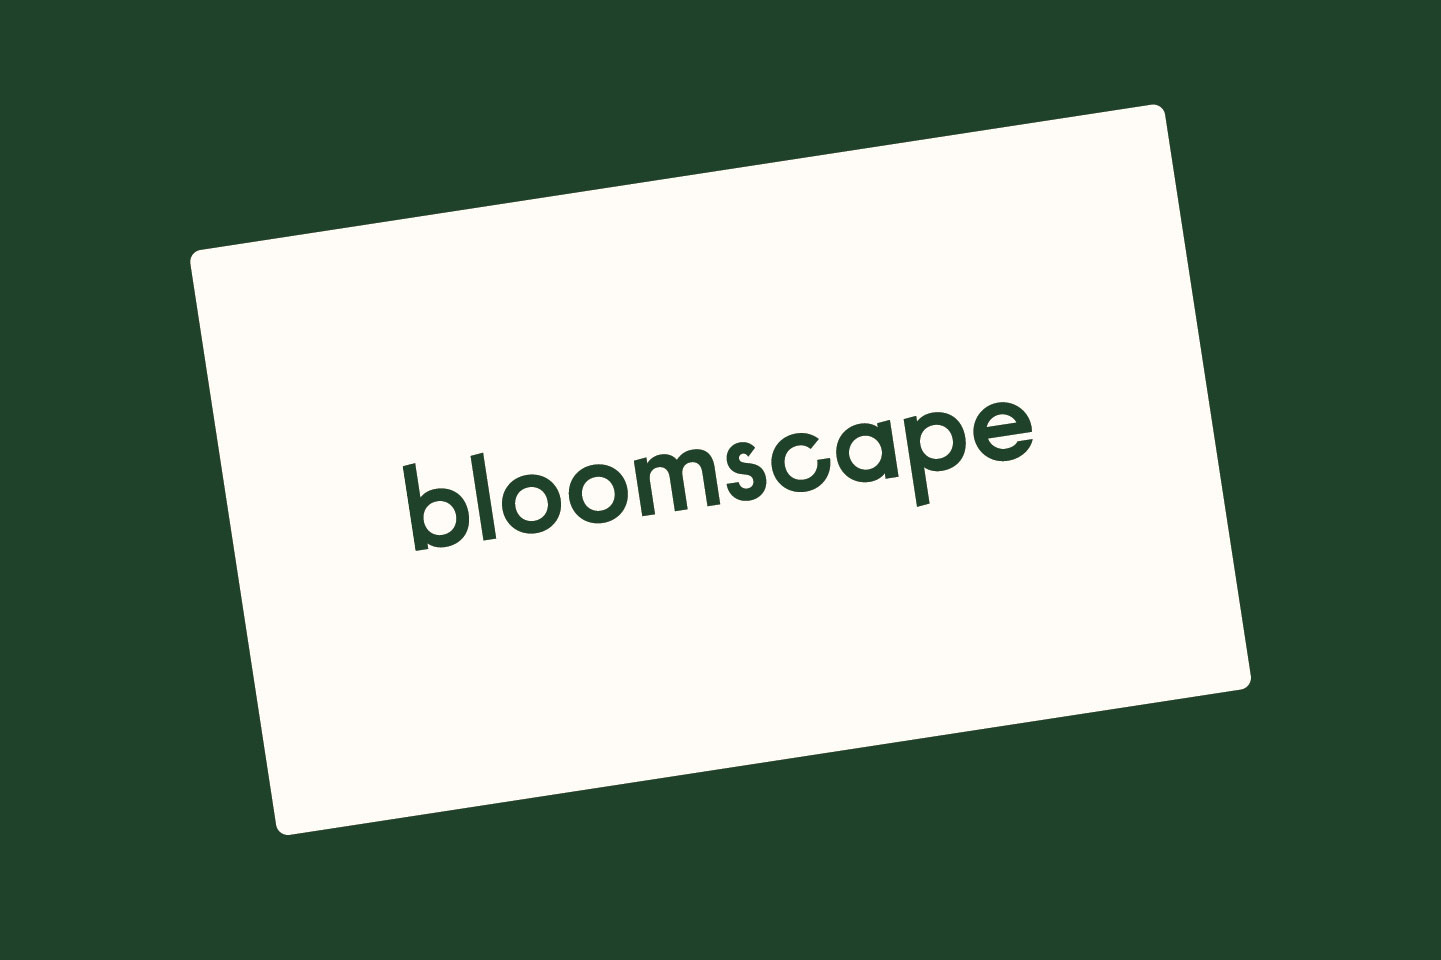 Gift card ideas - Bloomscape